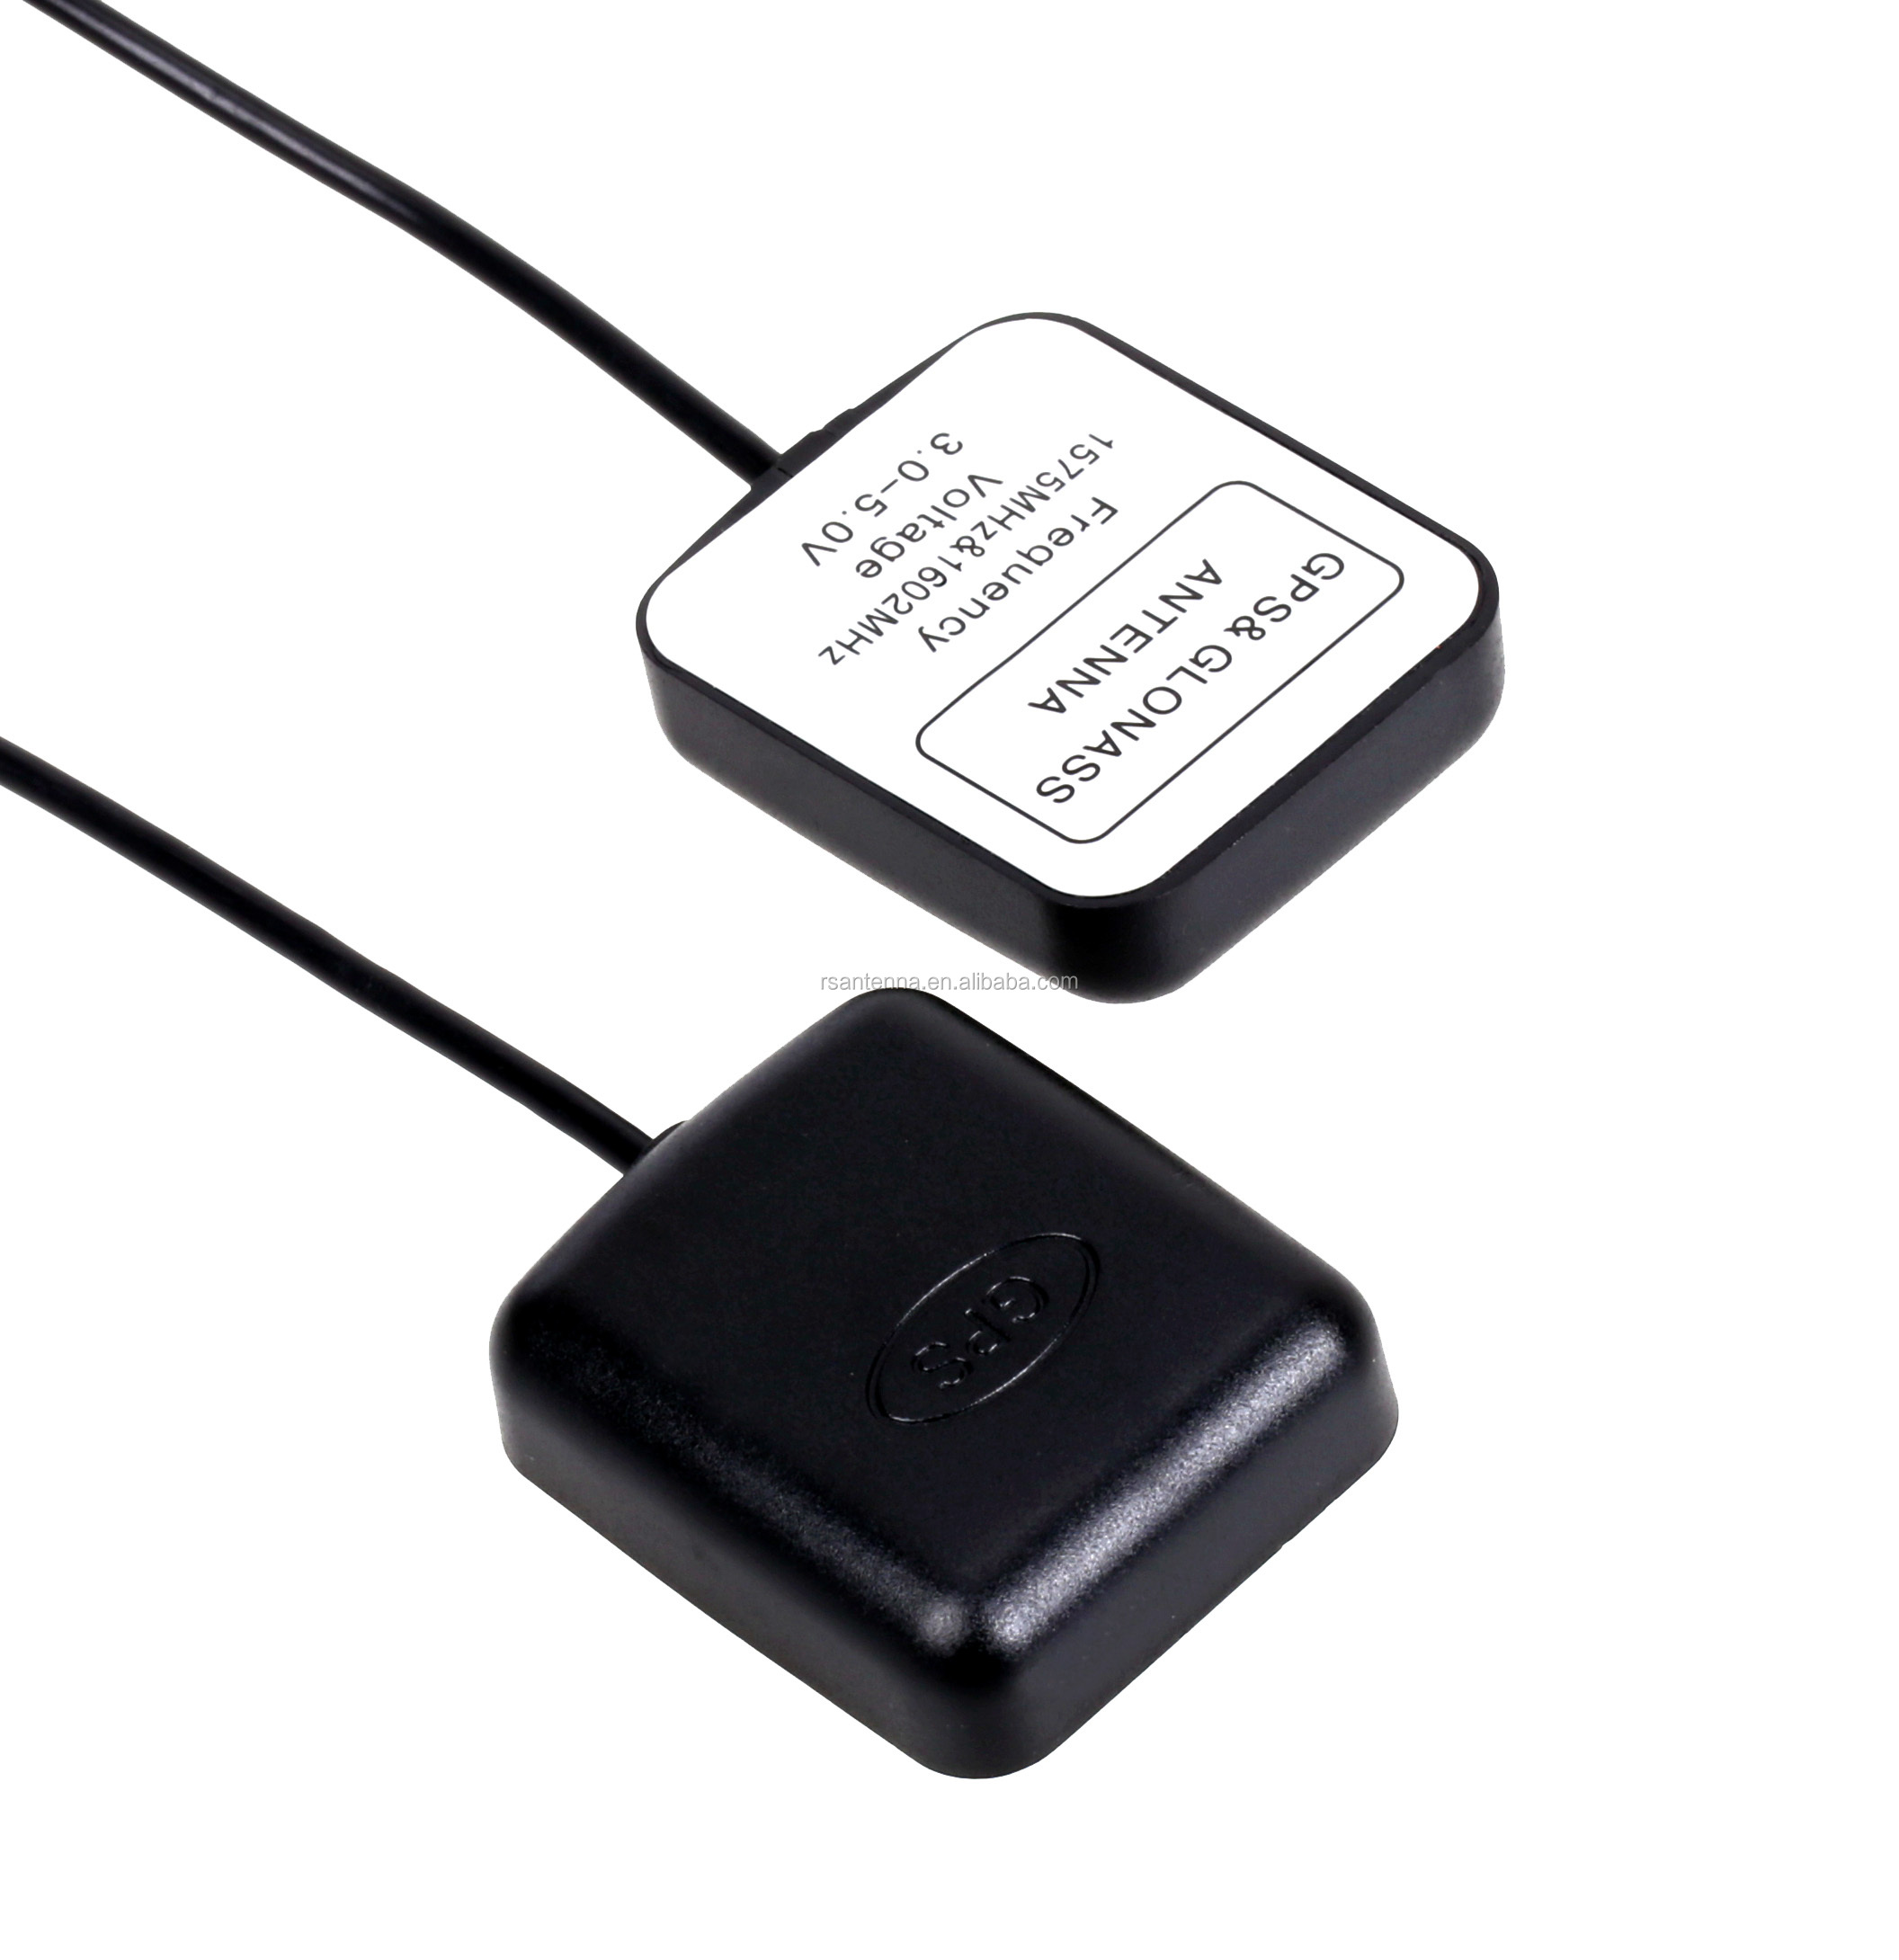 Gps Antenna 1575.42mhz Active Remote Aerial Sma Connector